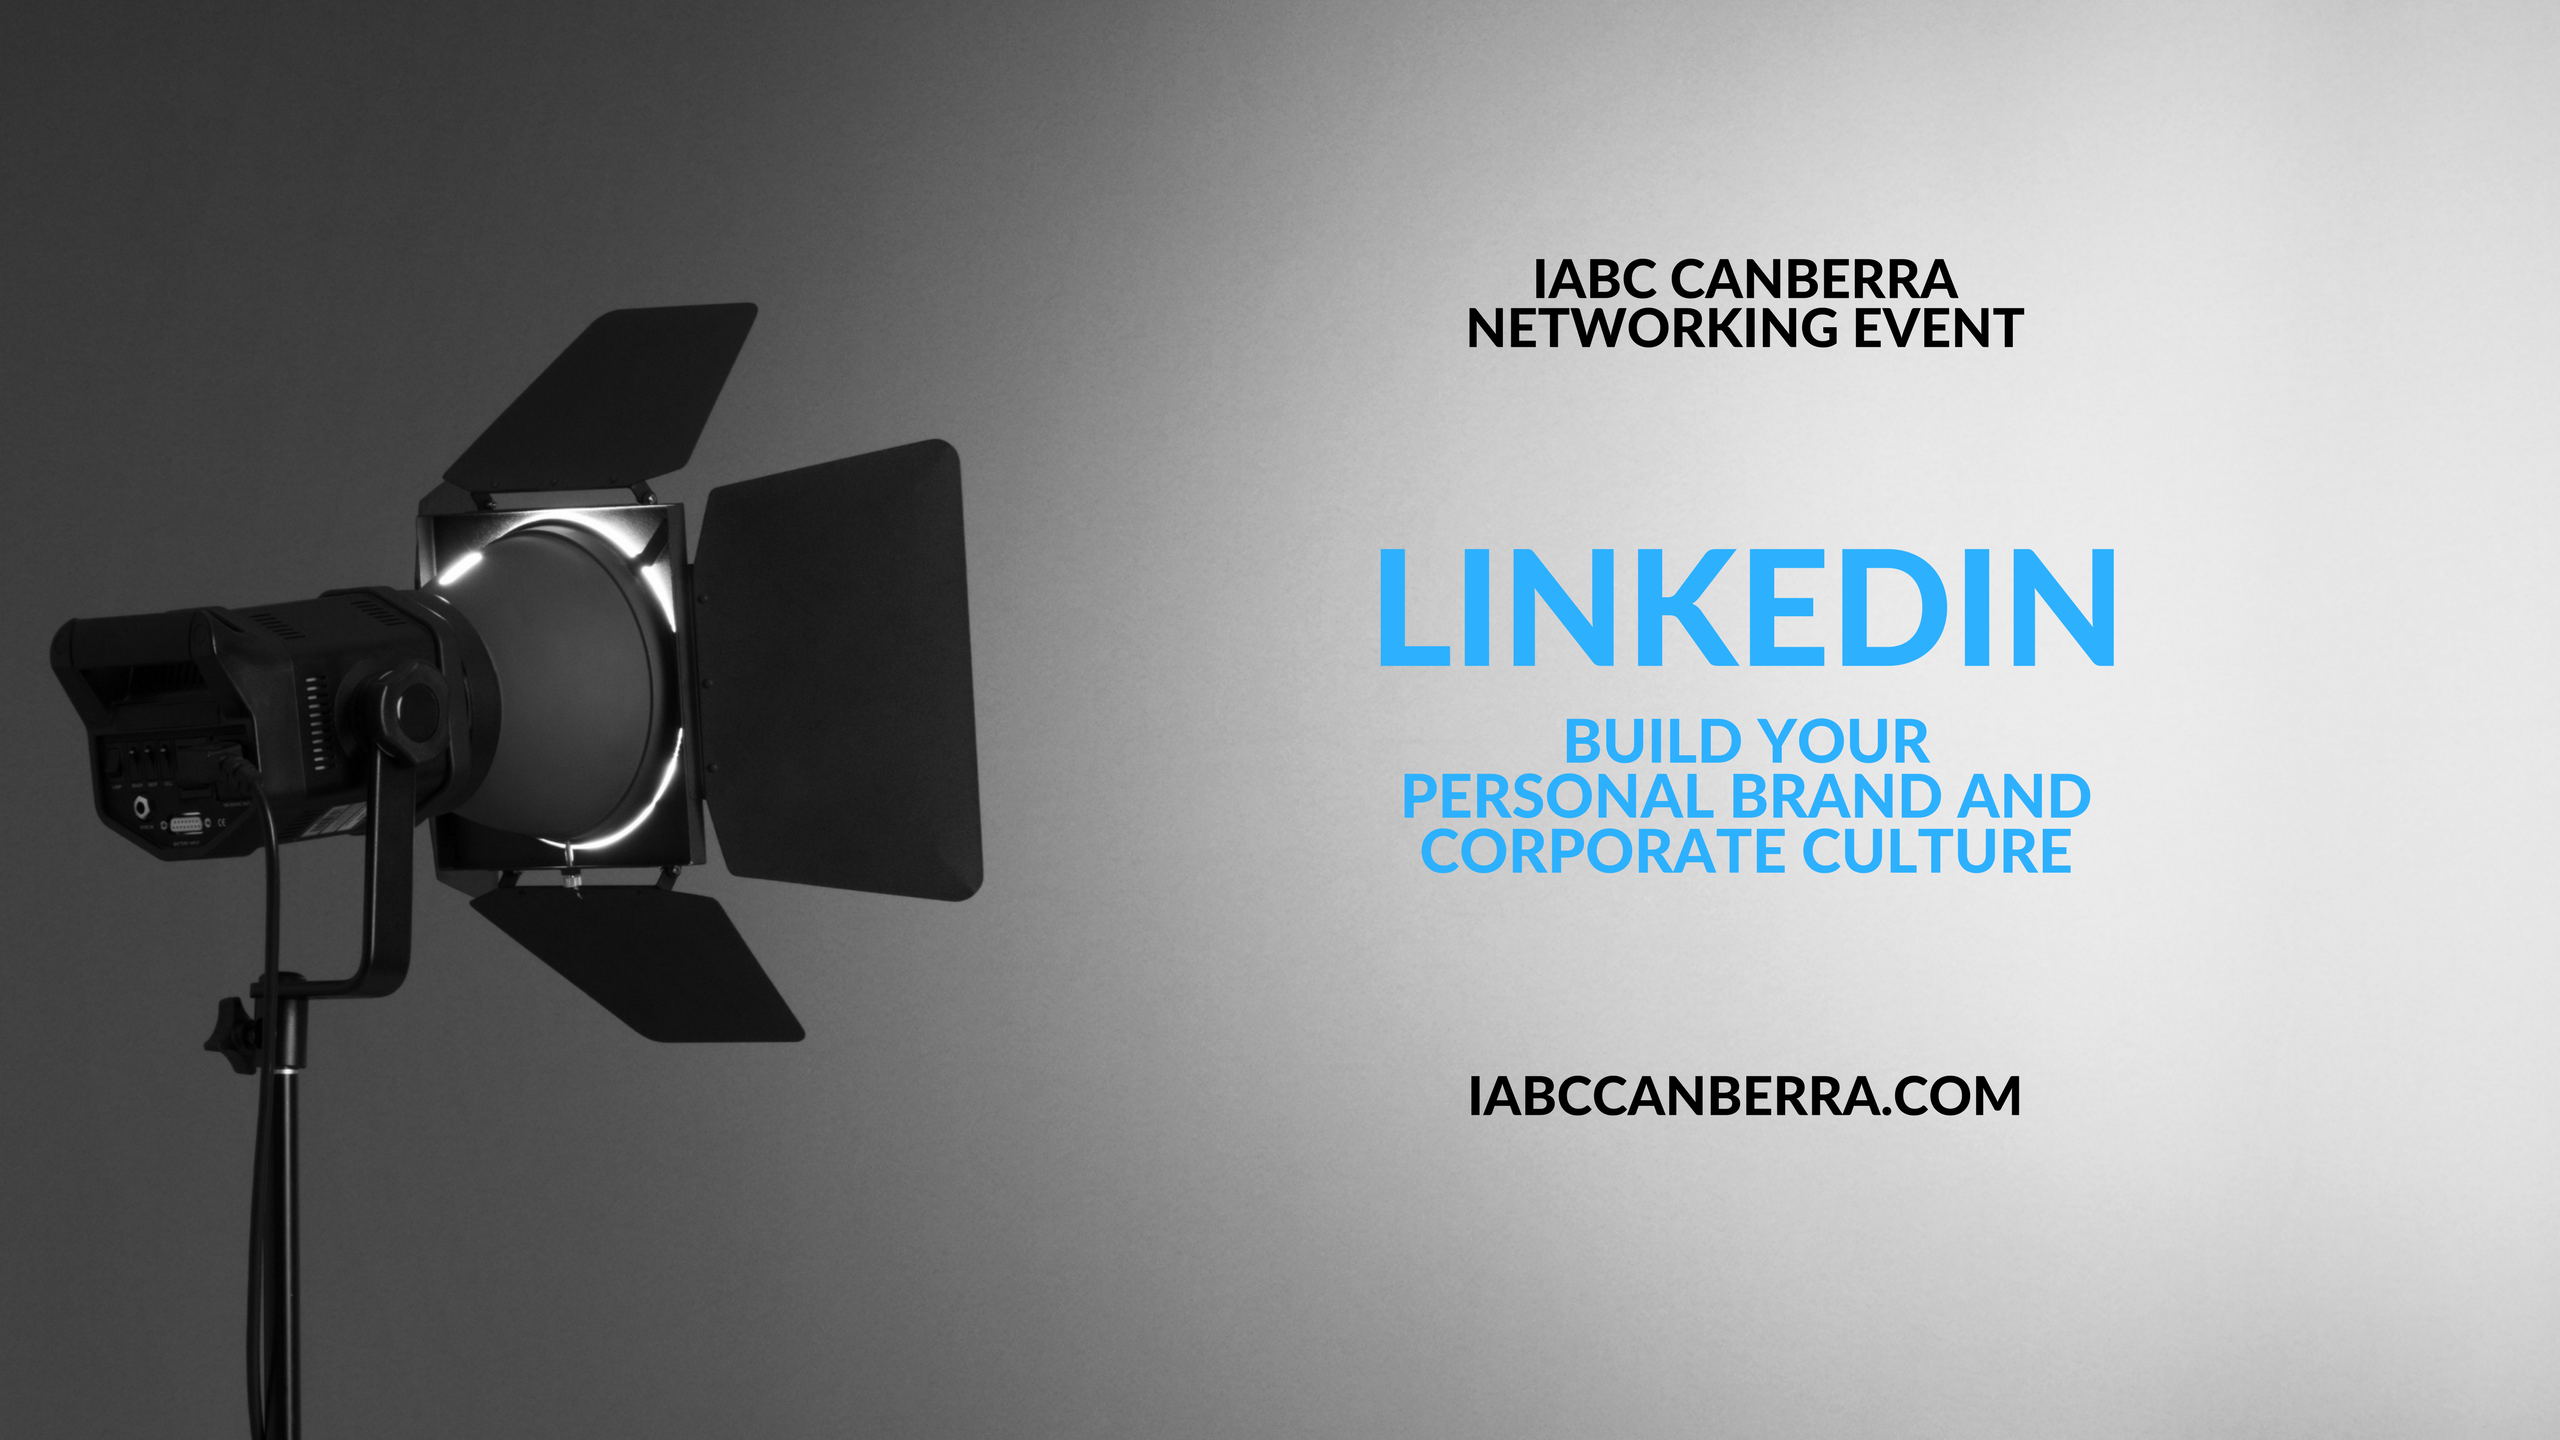 Building connections: LinkedIn